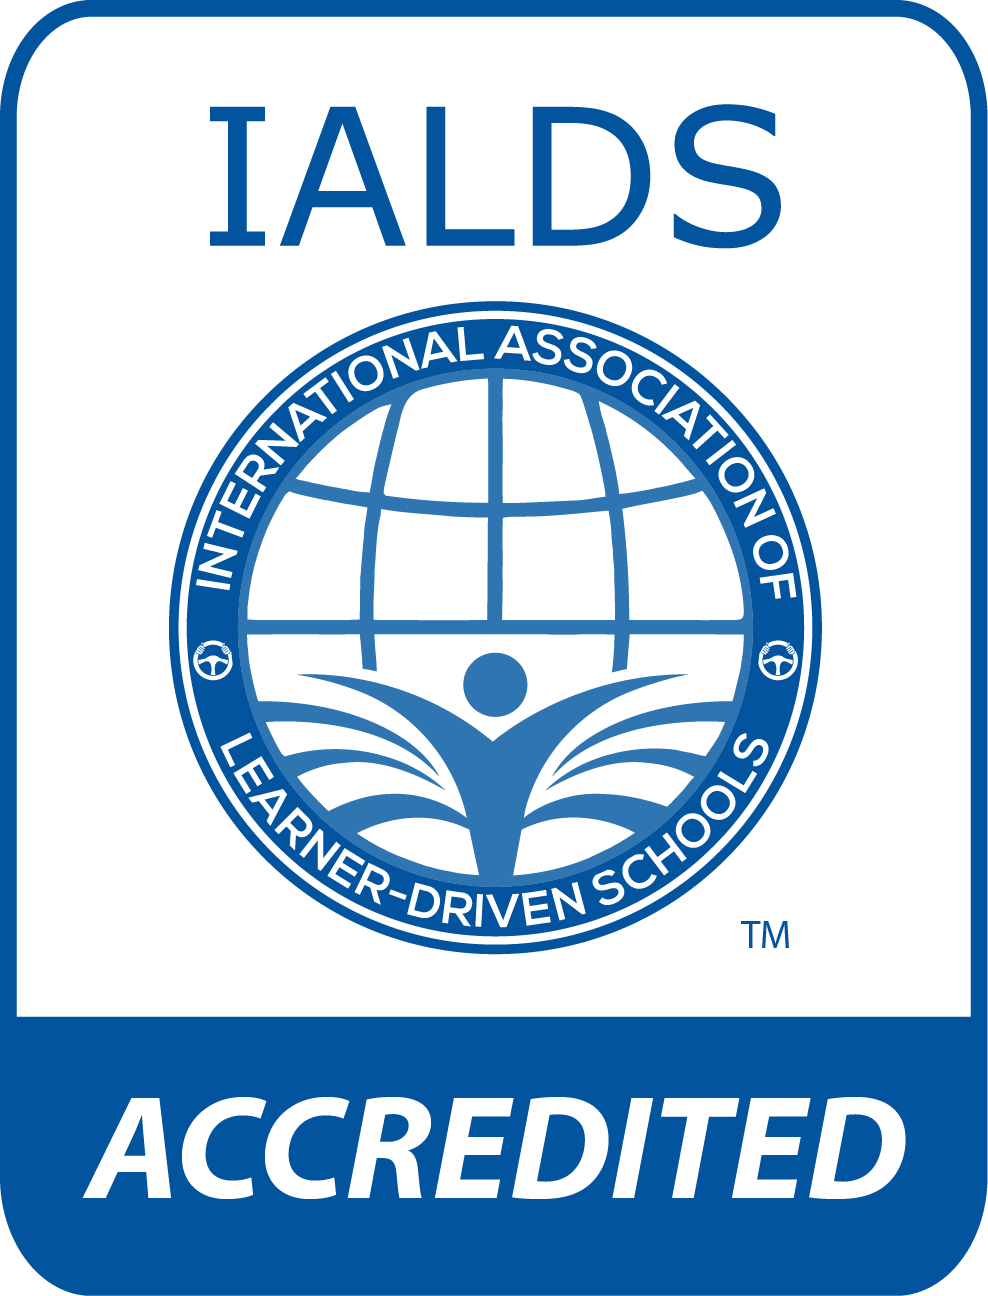 IALDS_Accredidation_web_seal_with_Acronym_Text 6.7.18.png